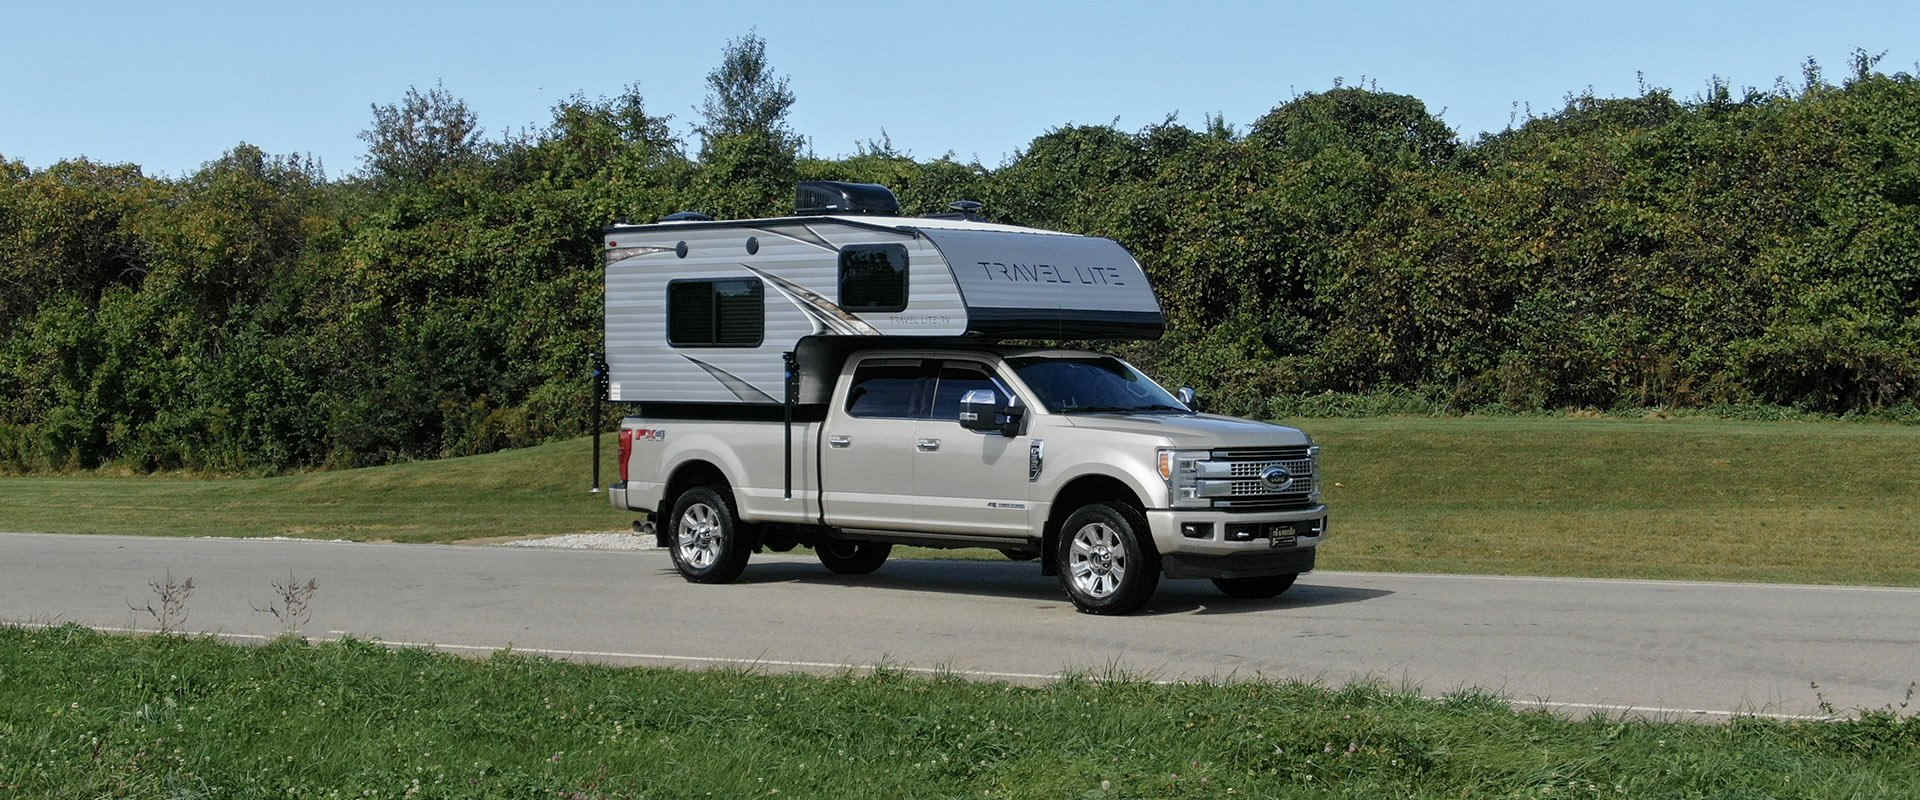 TRAVEL LITE TRUCK CAMPER DEALER IN PENNSYLVANIA